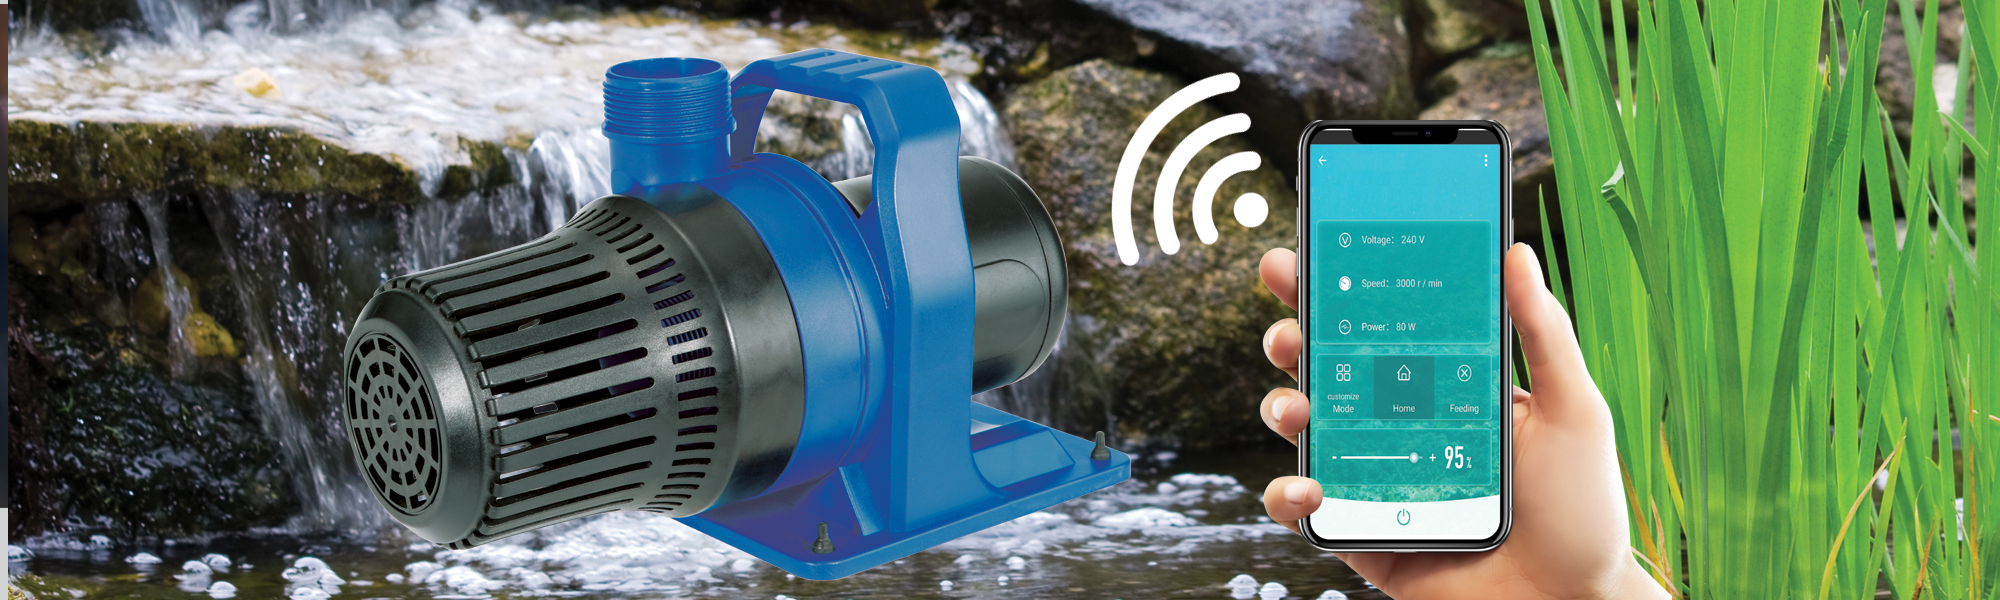 Bermuda Filter Wifi Pump